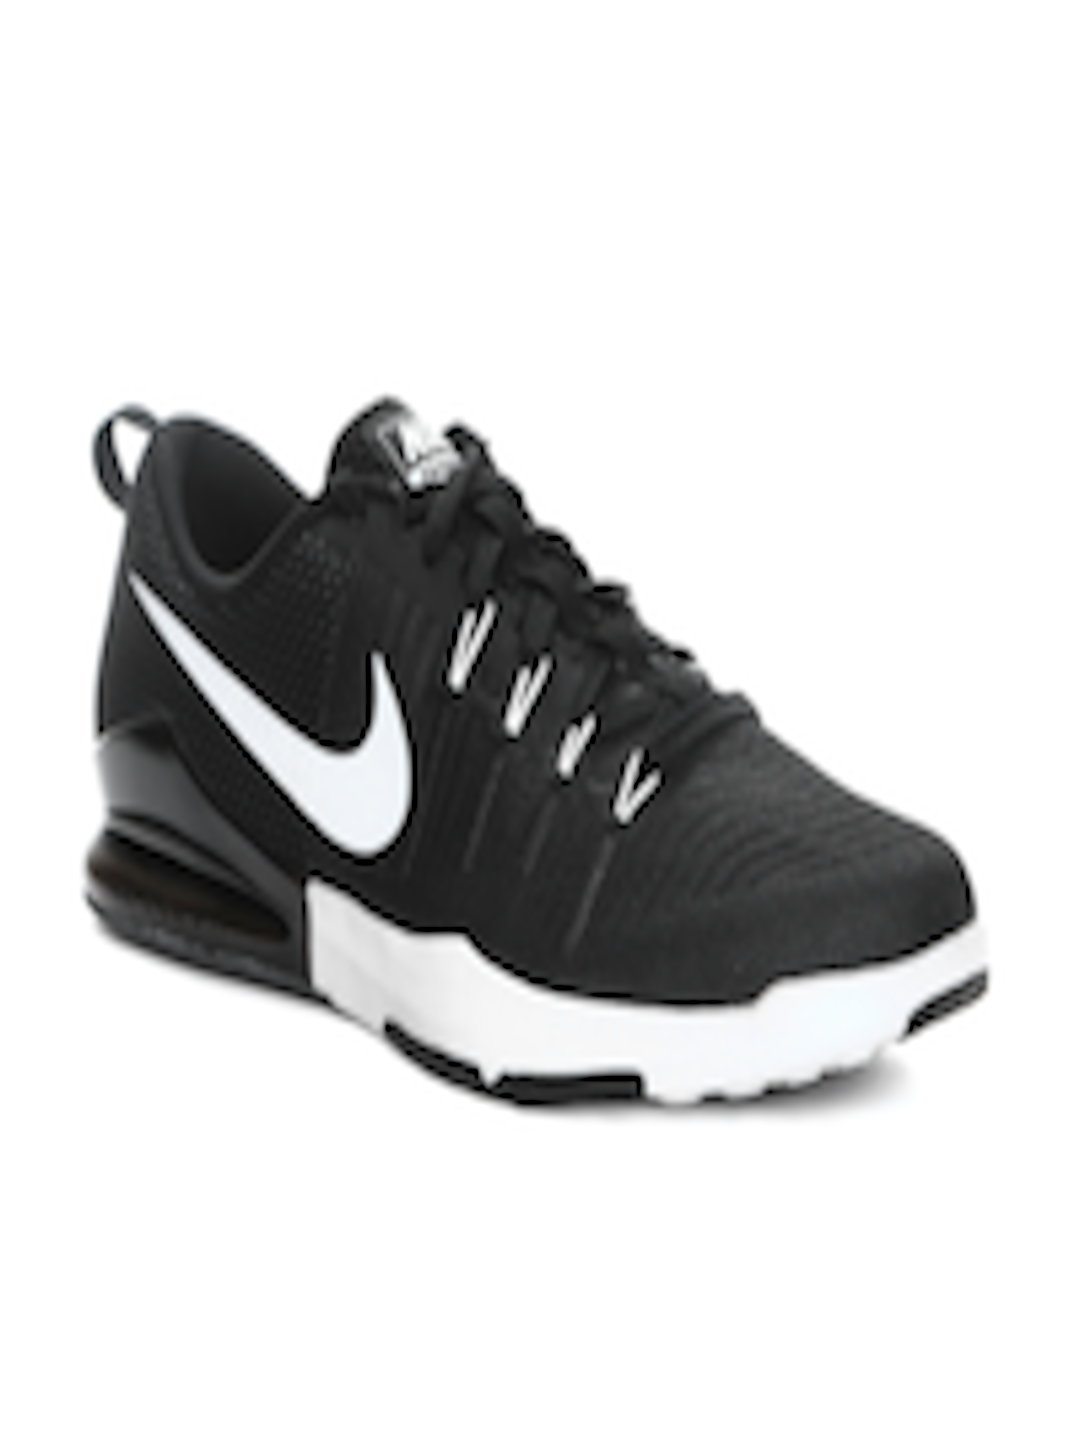 187a9c016217 Buy Nike Men Black ZOOM Train Action Training Shoes - Sports Shoes for Men  1547982